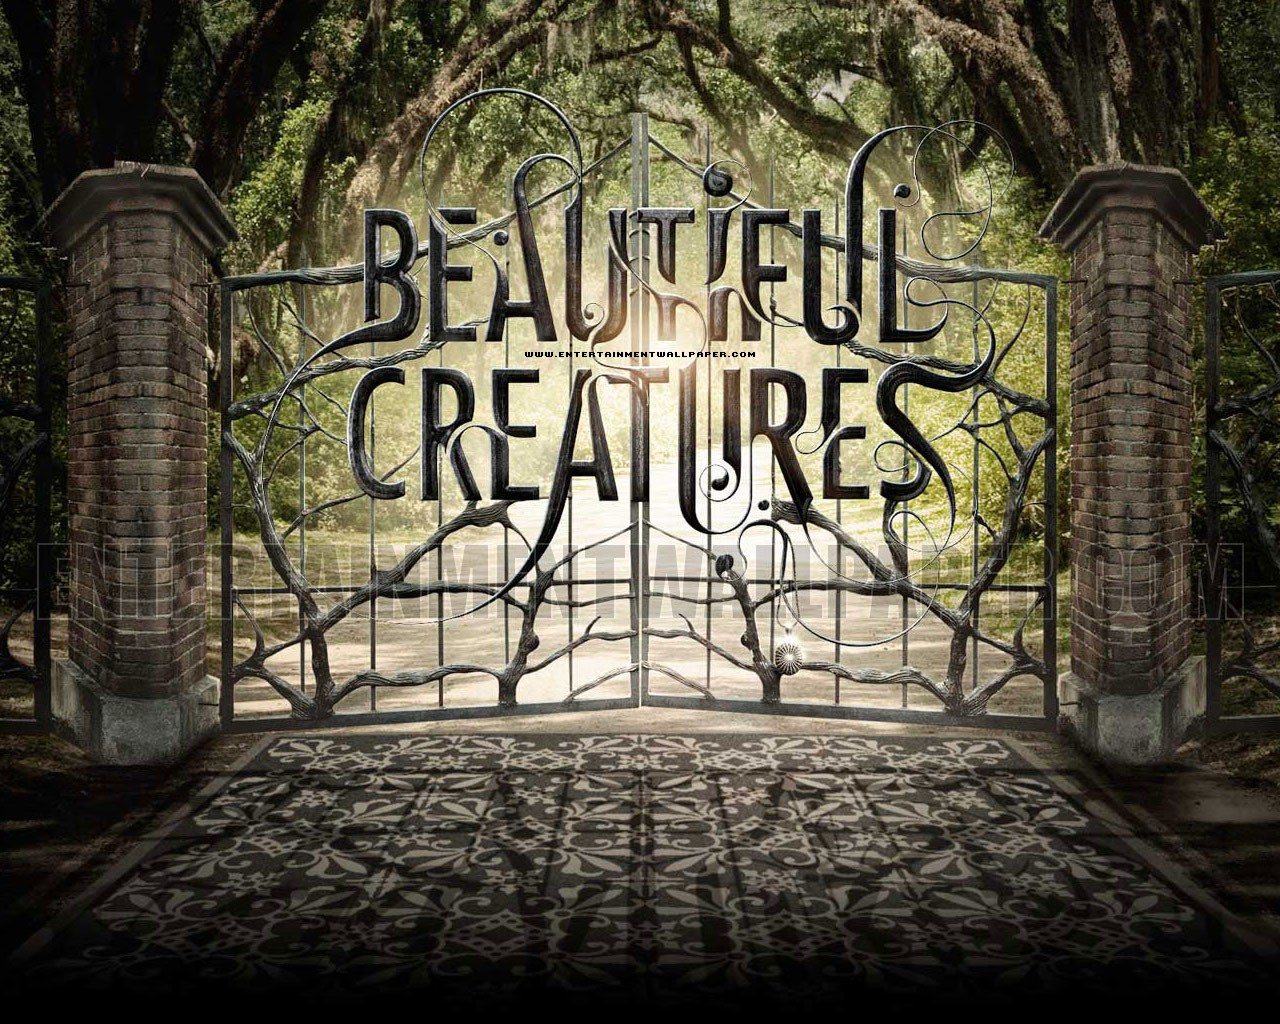 empires and mangers beautiful creatures